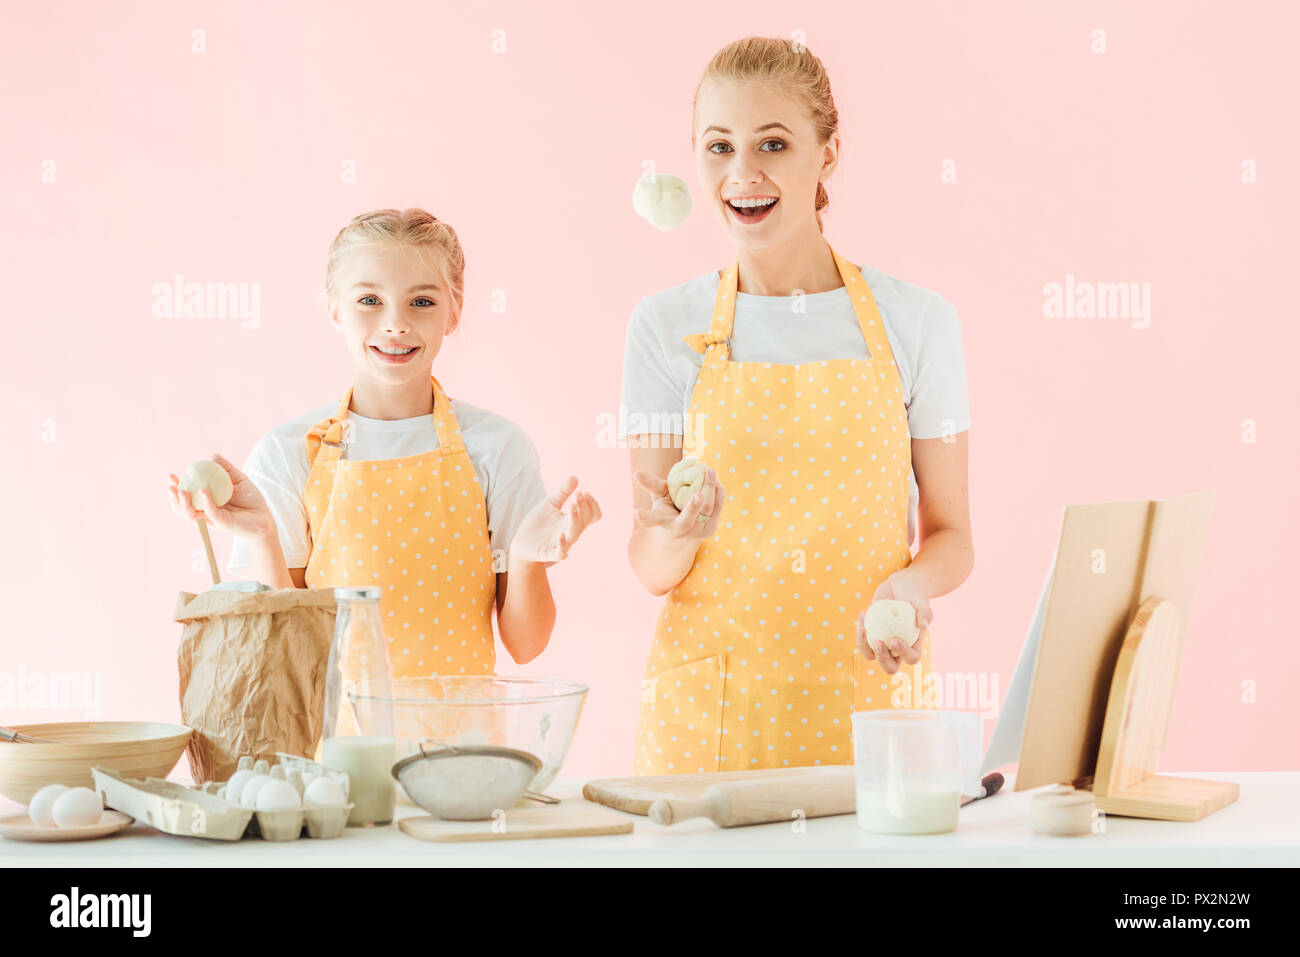 happy mother and daughter juggling with dough pieces while cooking isolated on pink - Stock Image